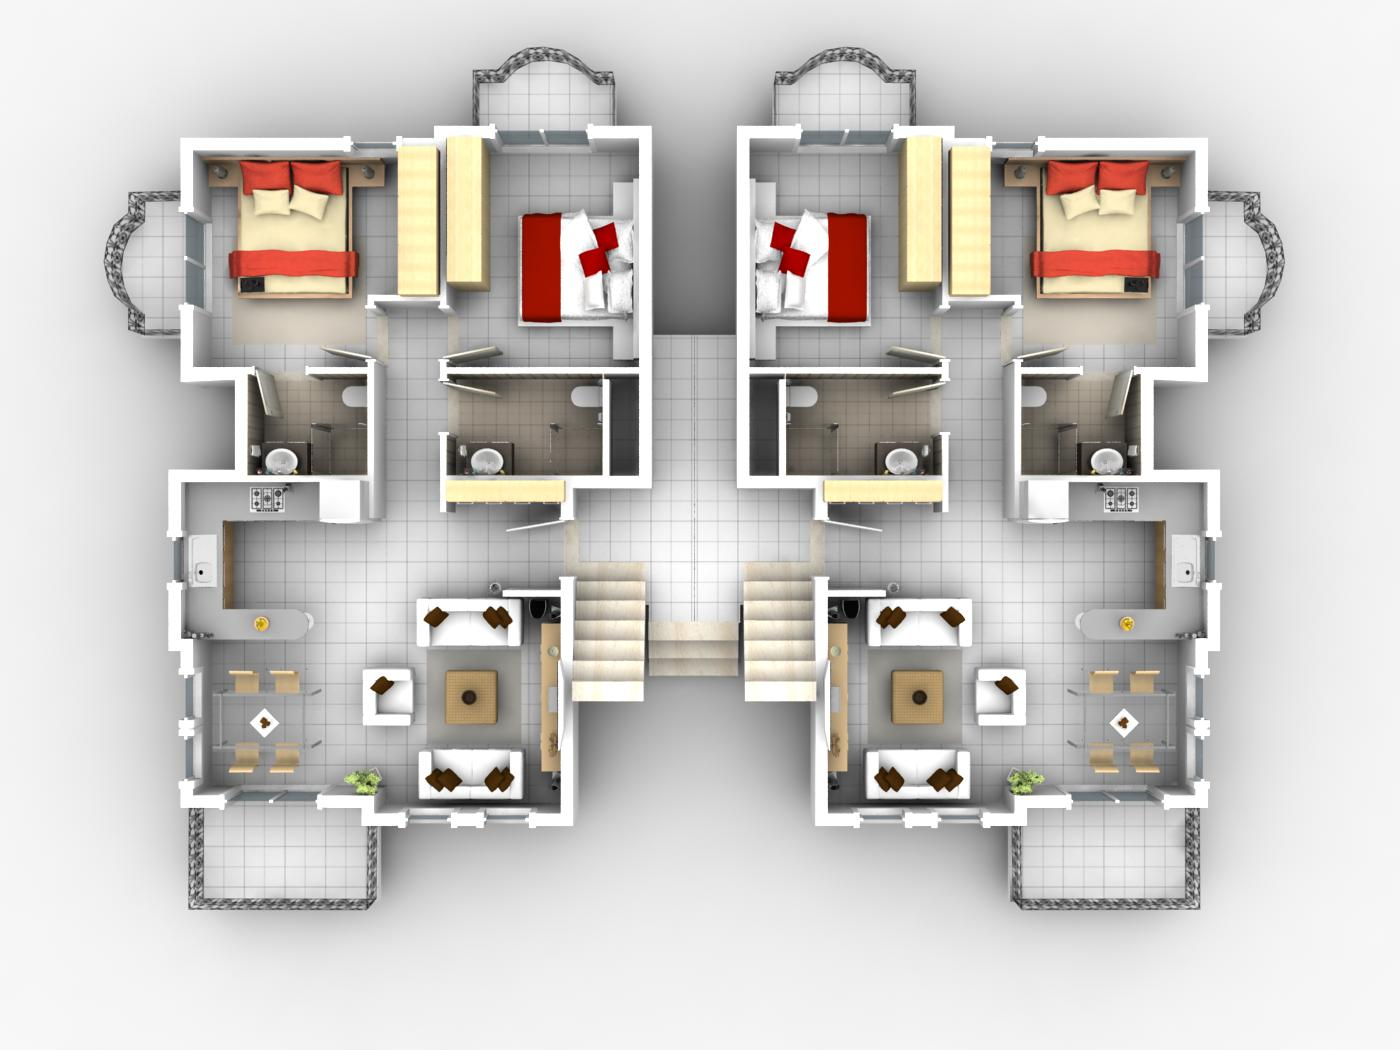 3 bedroom european apartment floor plans bedroom furniture high resolution - Bedroom design software ...